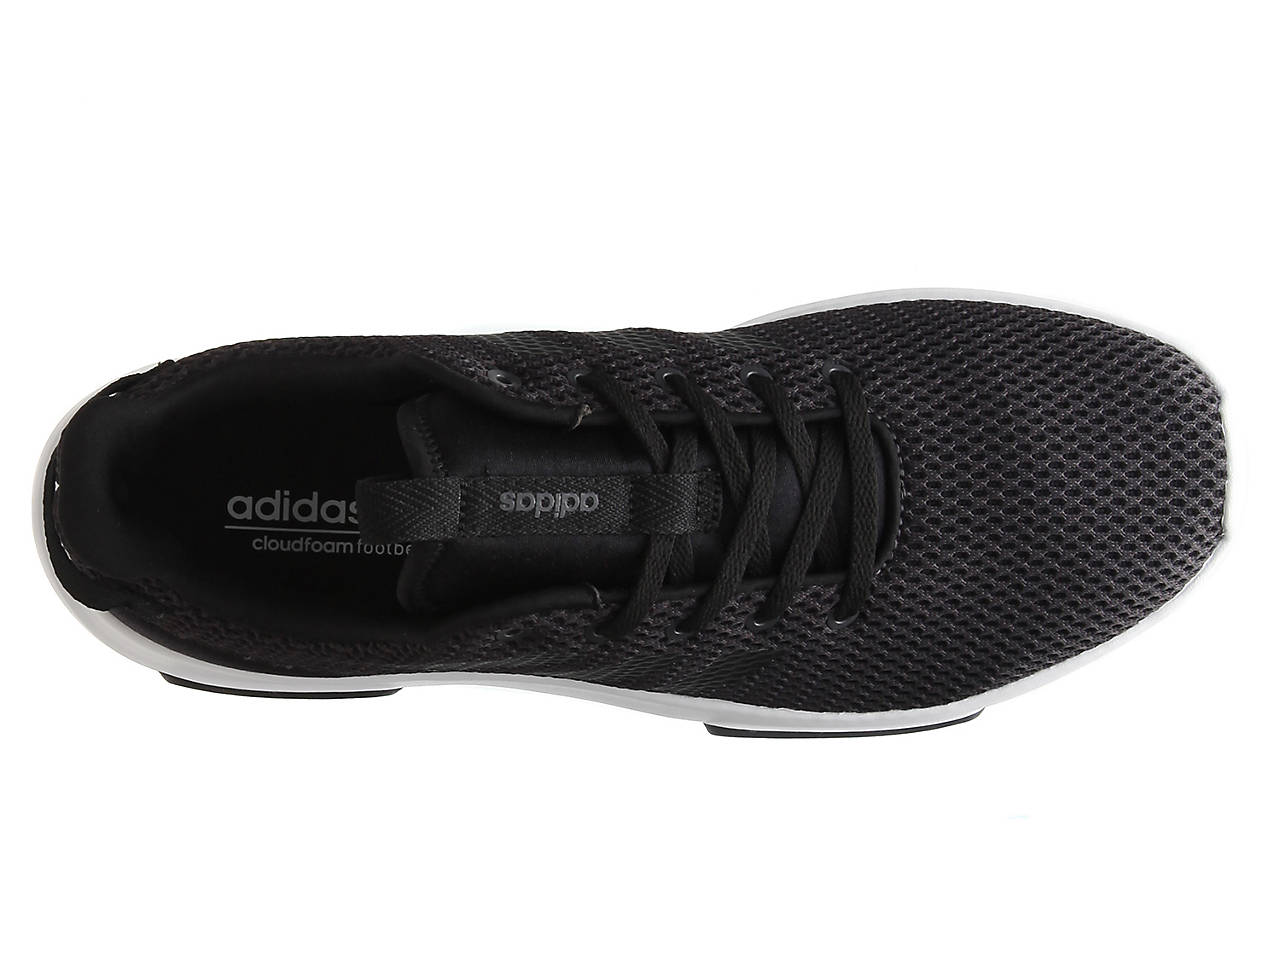 6645d2f2b4a635 adidas Cloudfoam Racer TR Sneaker - Men s Men s Shoes